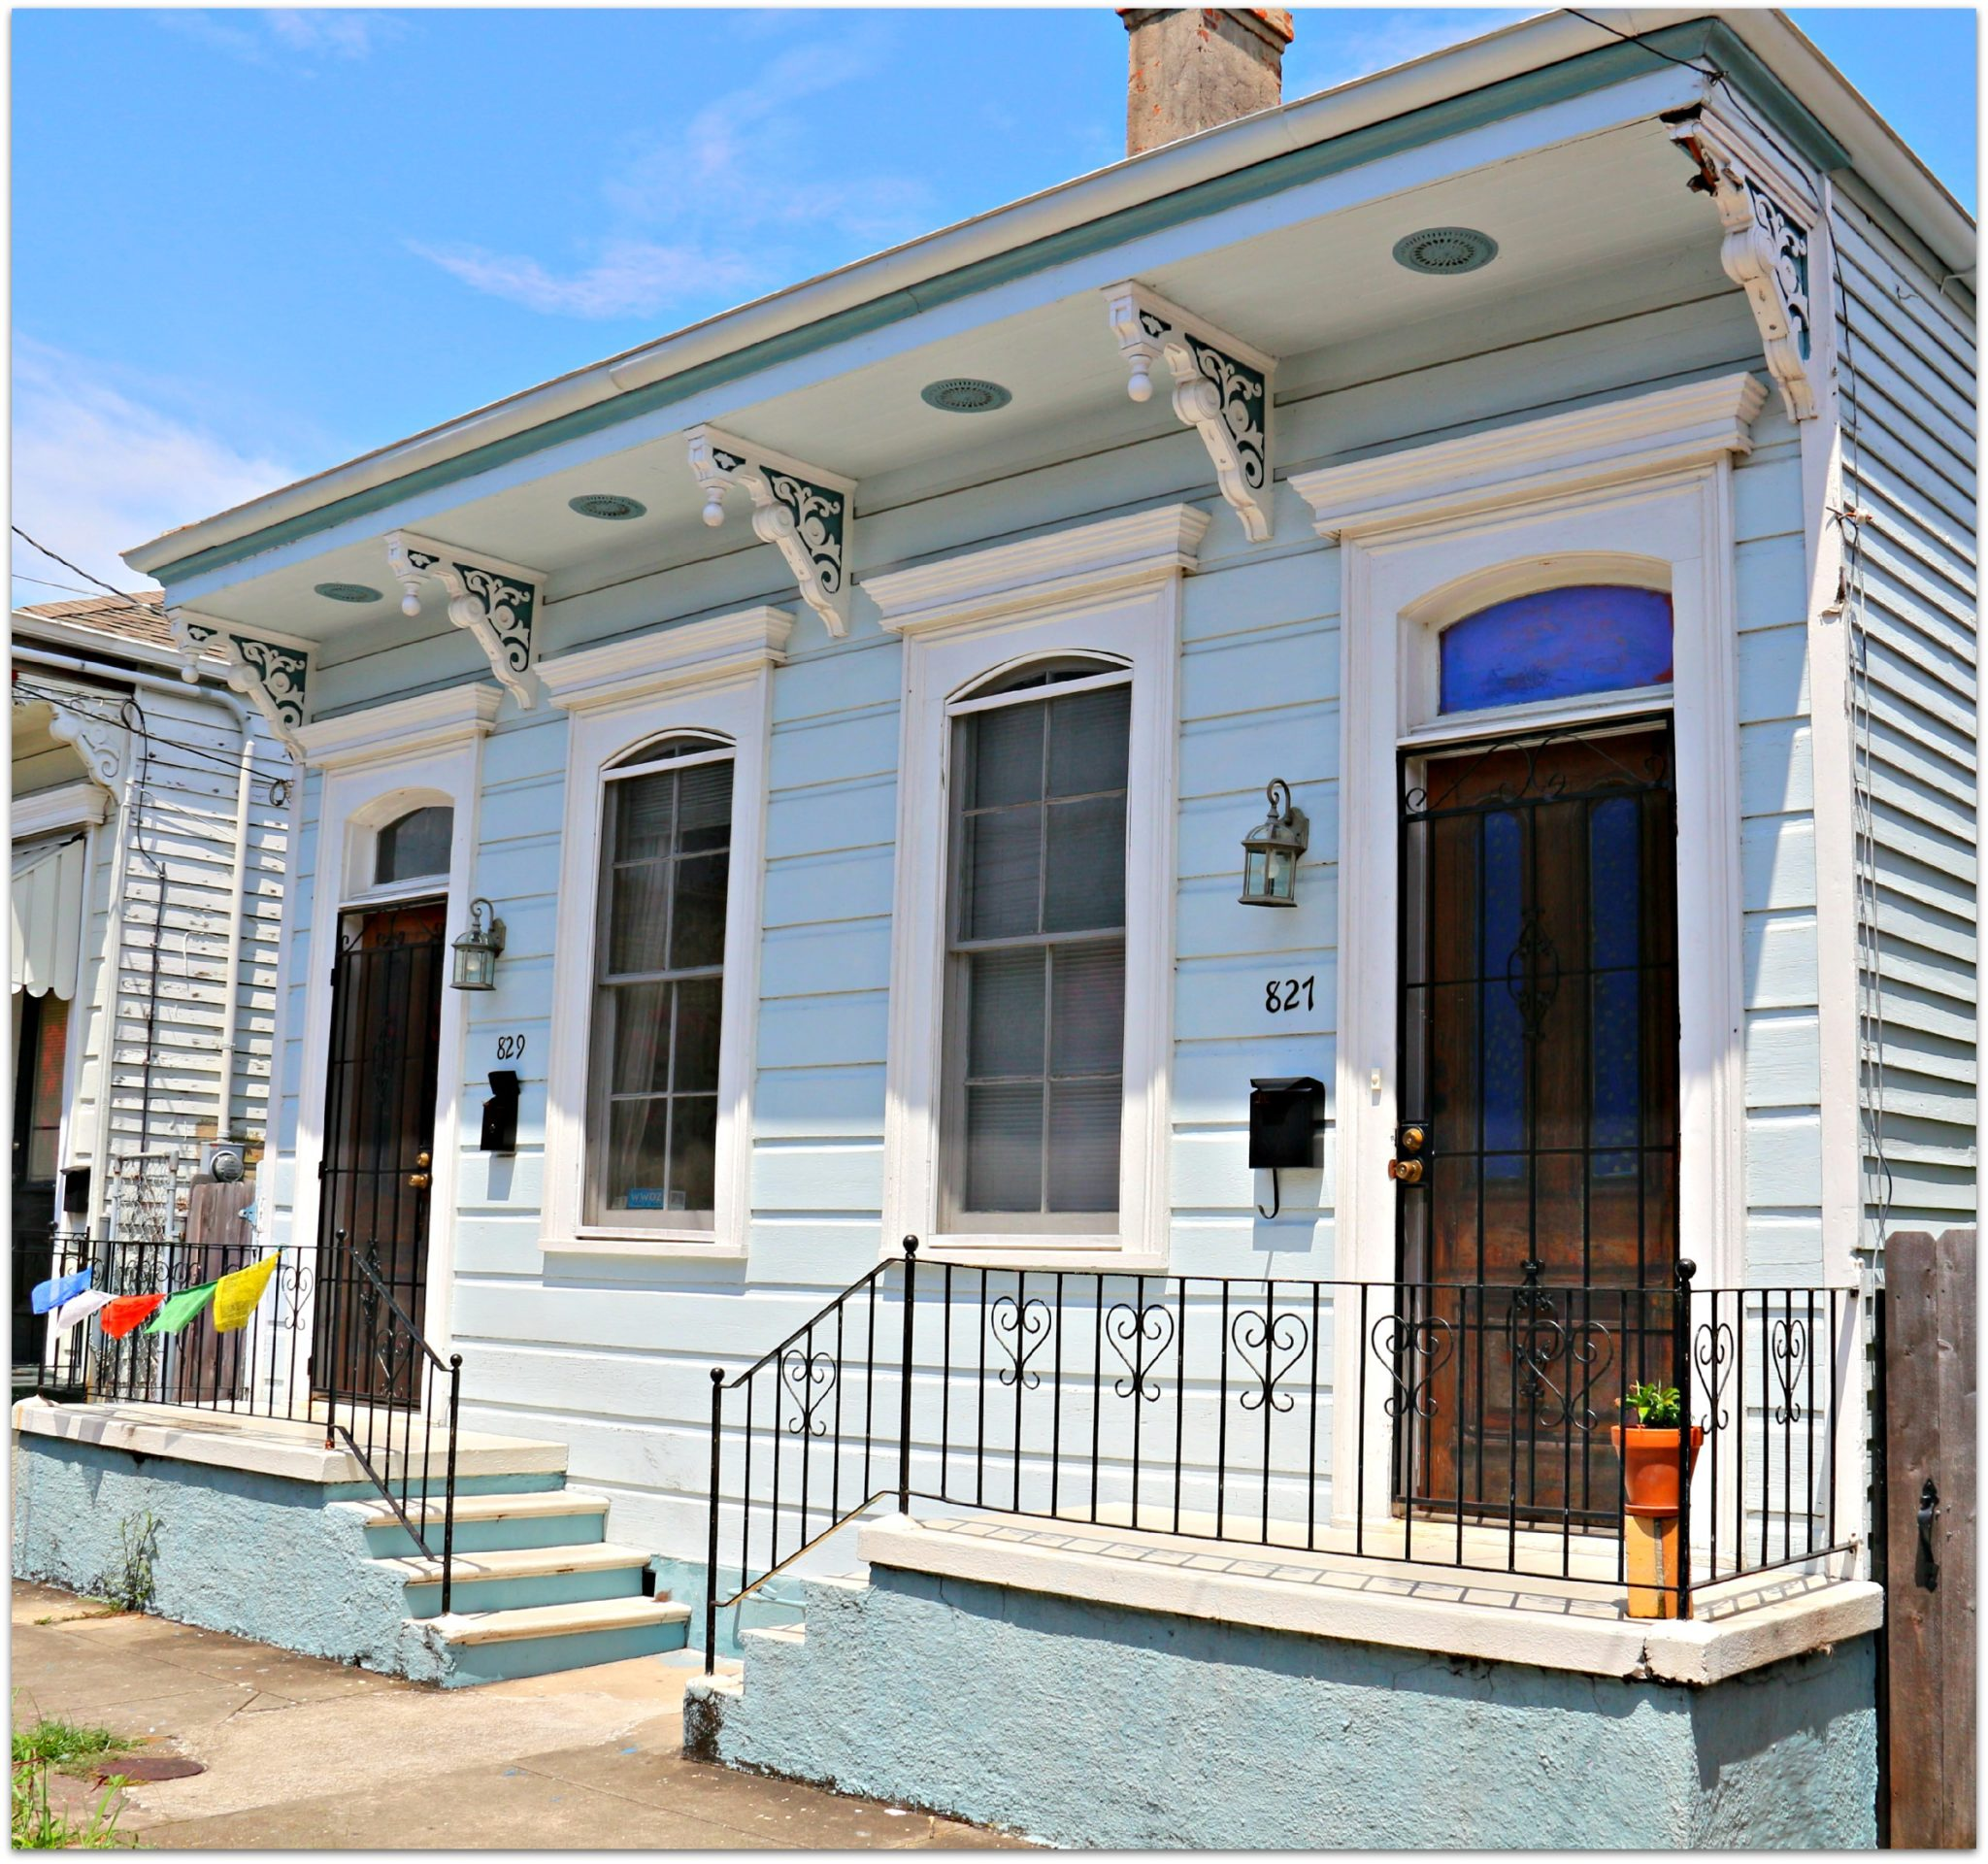 Bywater Doubles,The most common design